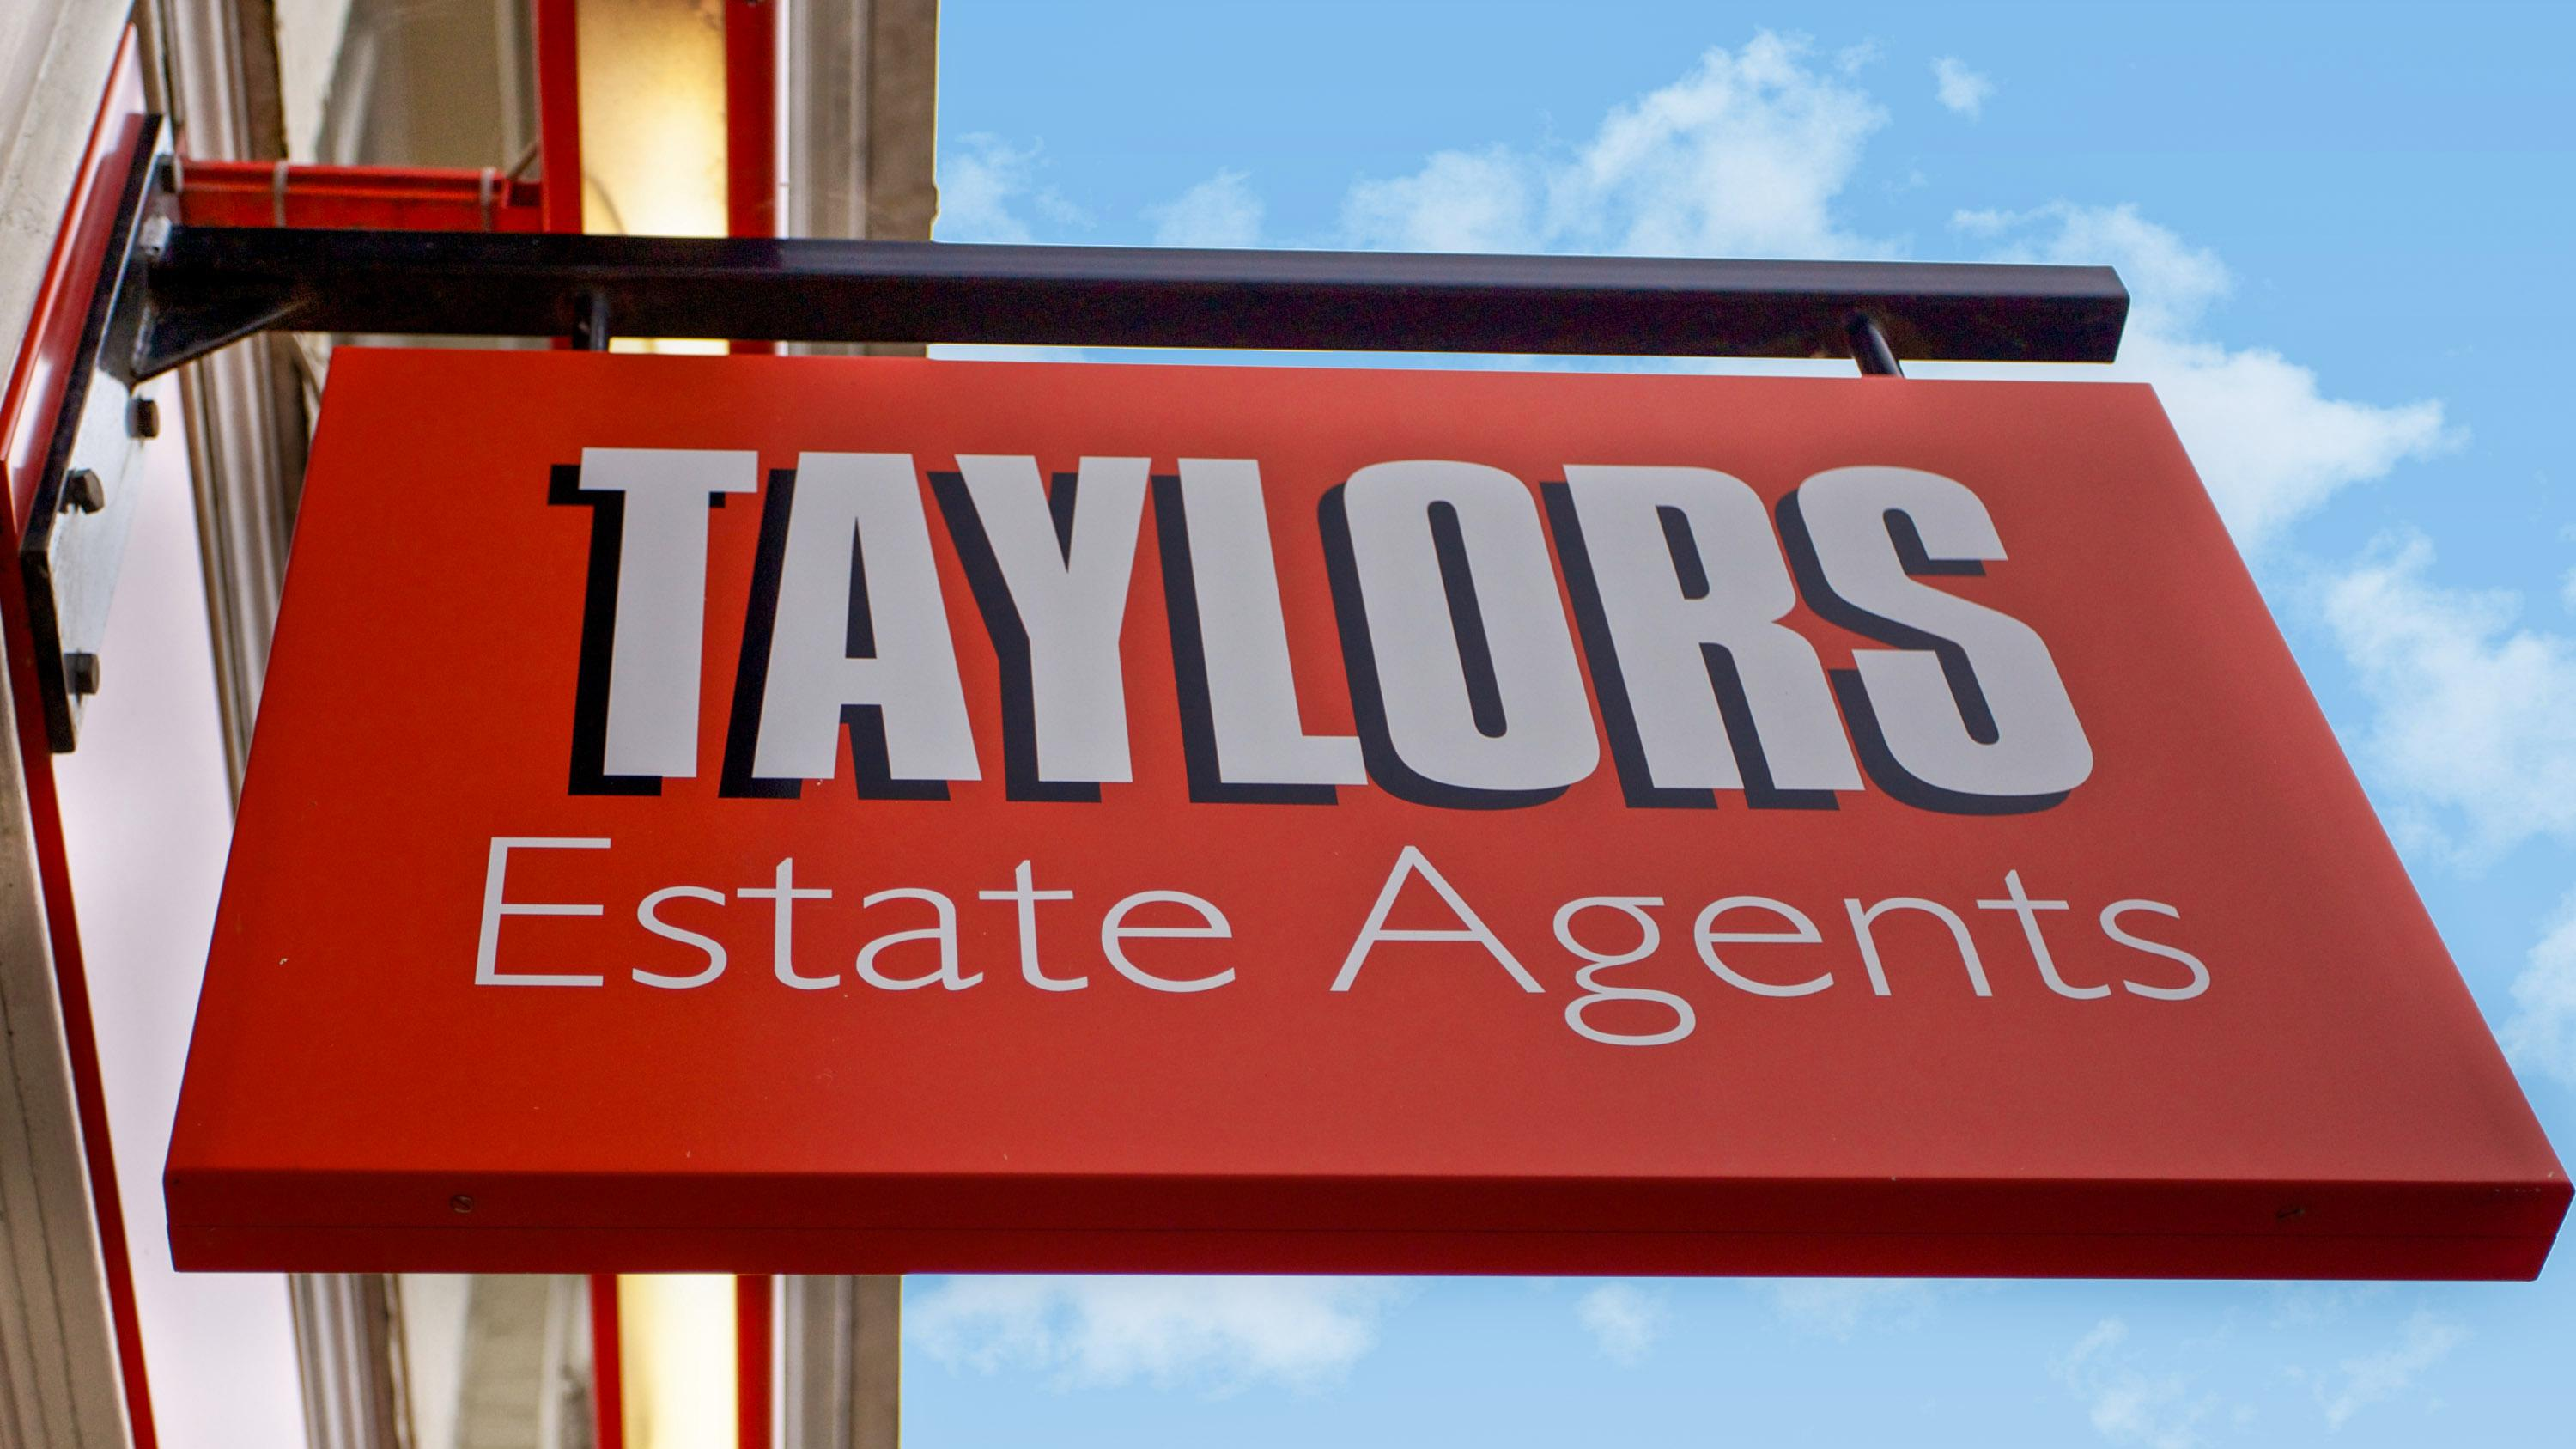 Taylors Sales and Letting Agents Leighton Buzzard